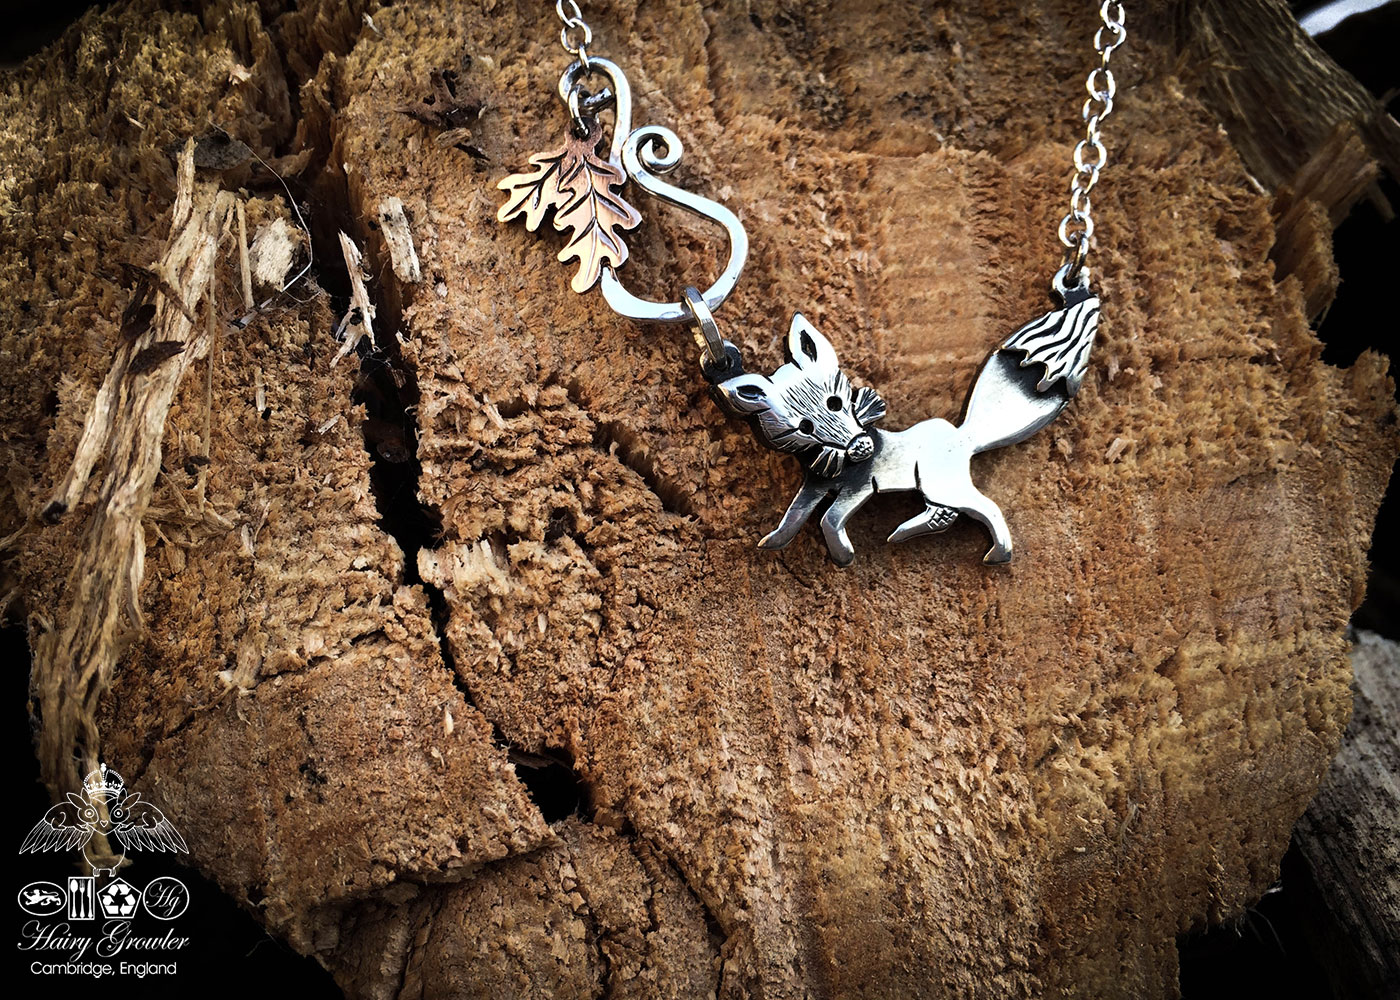 Handcrafted and recycled silver curious fox necklace made from silver coins